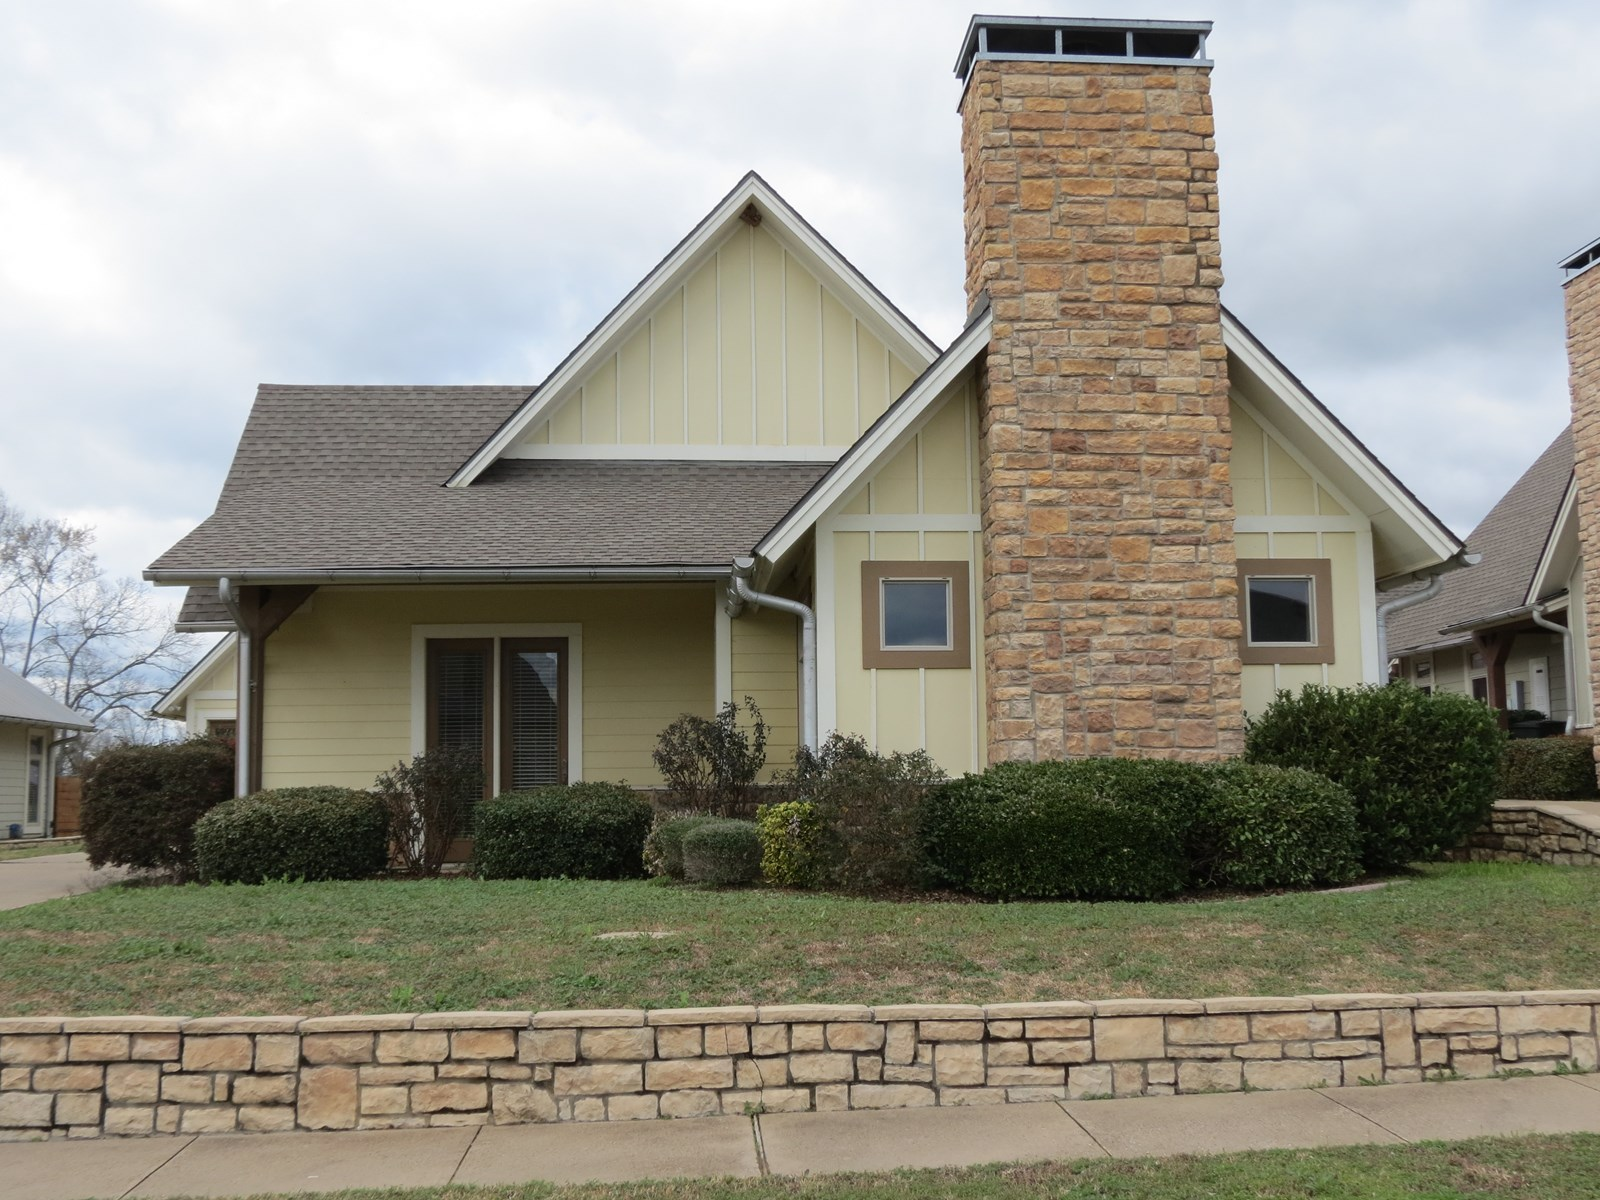 BEAUTIFUL COUNTRY HOME IN GARDEN VALLEY ADDITION 3/2/2